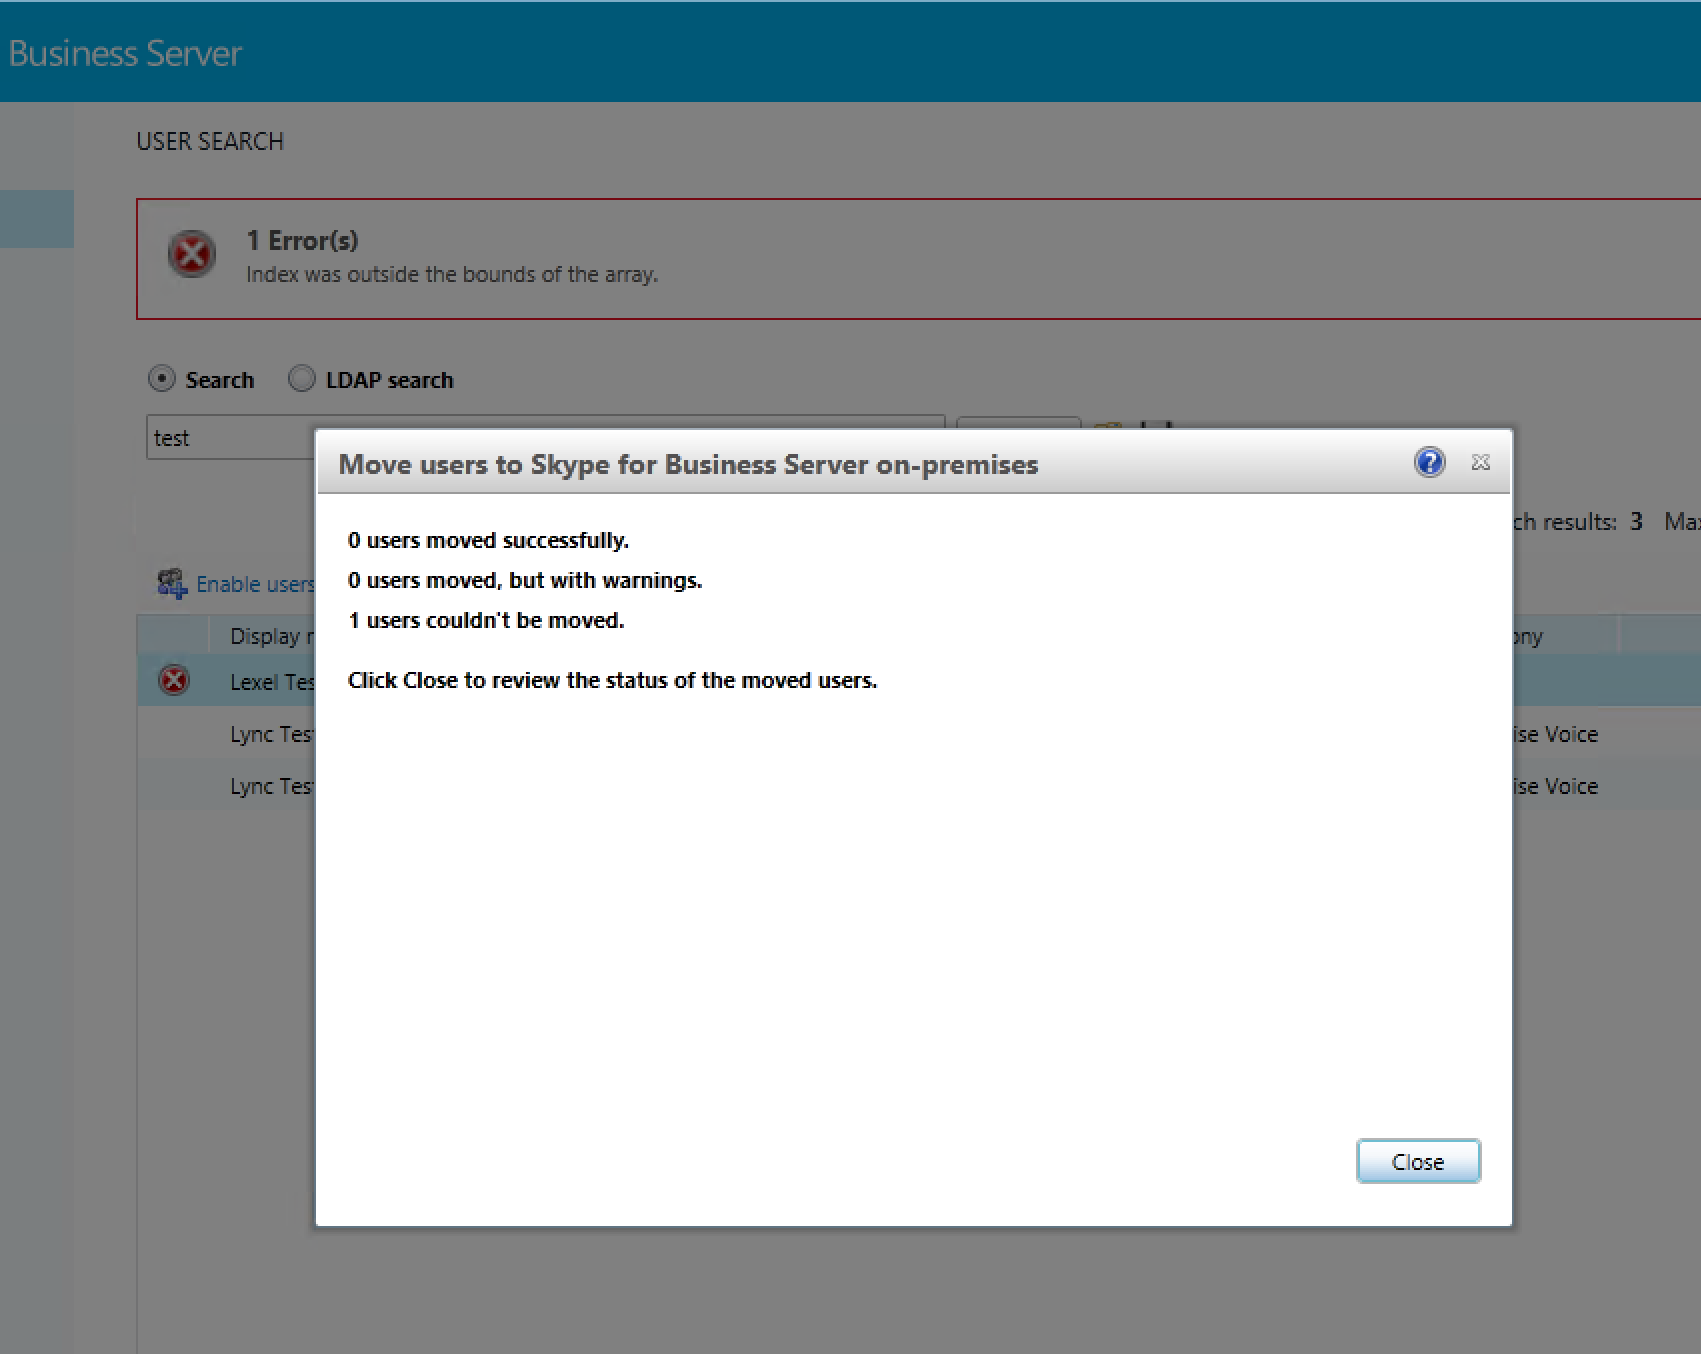 Skype for Business Hybrid: Migrating from Online to On